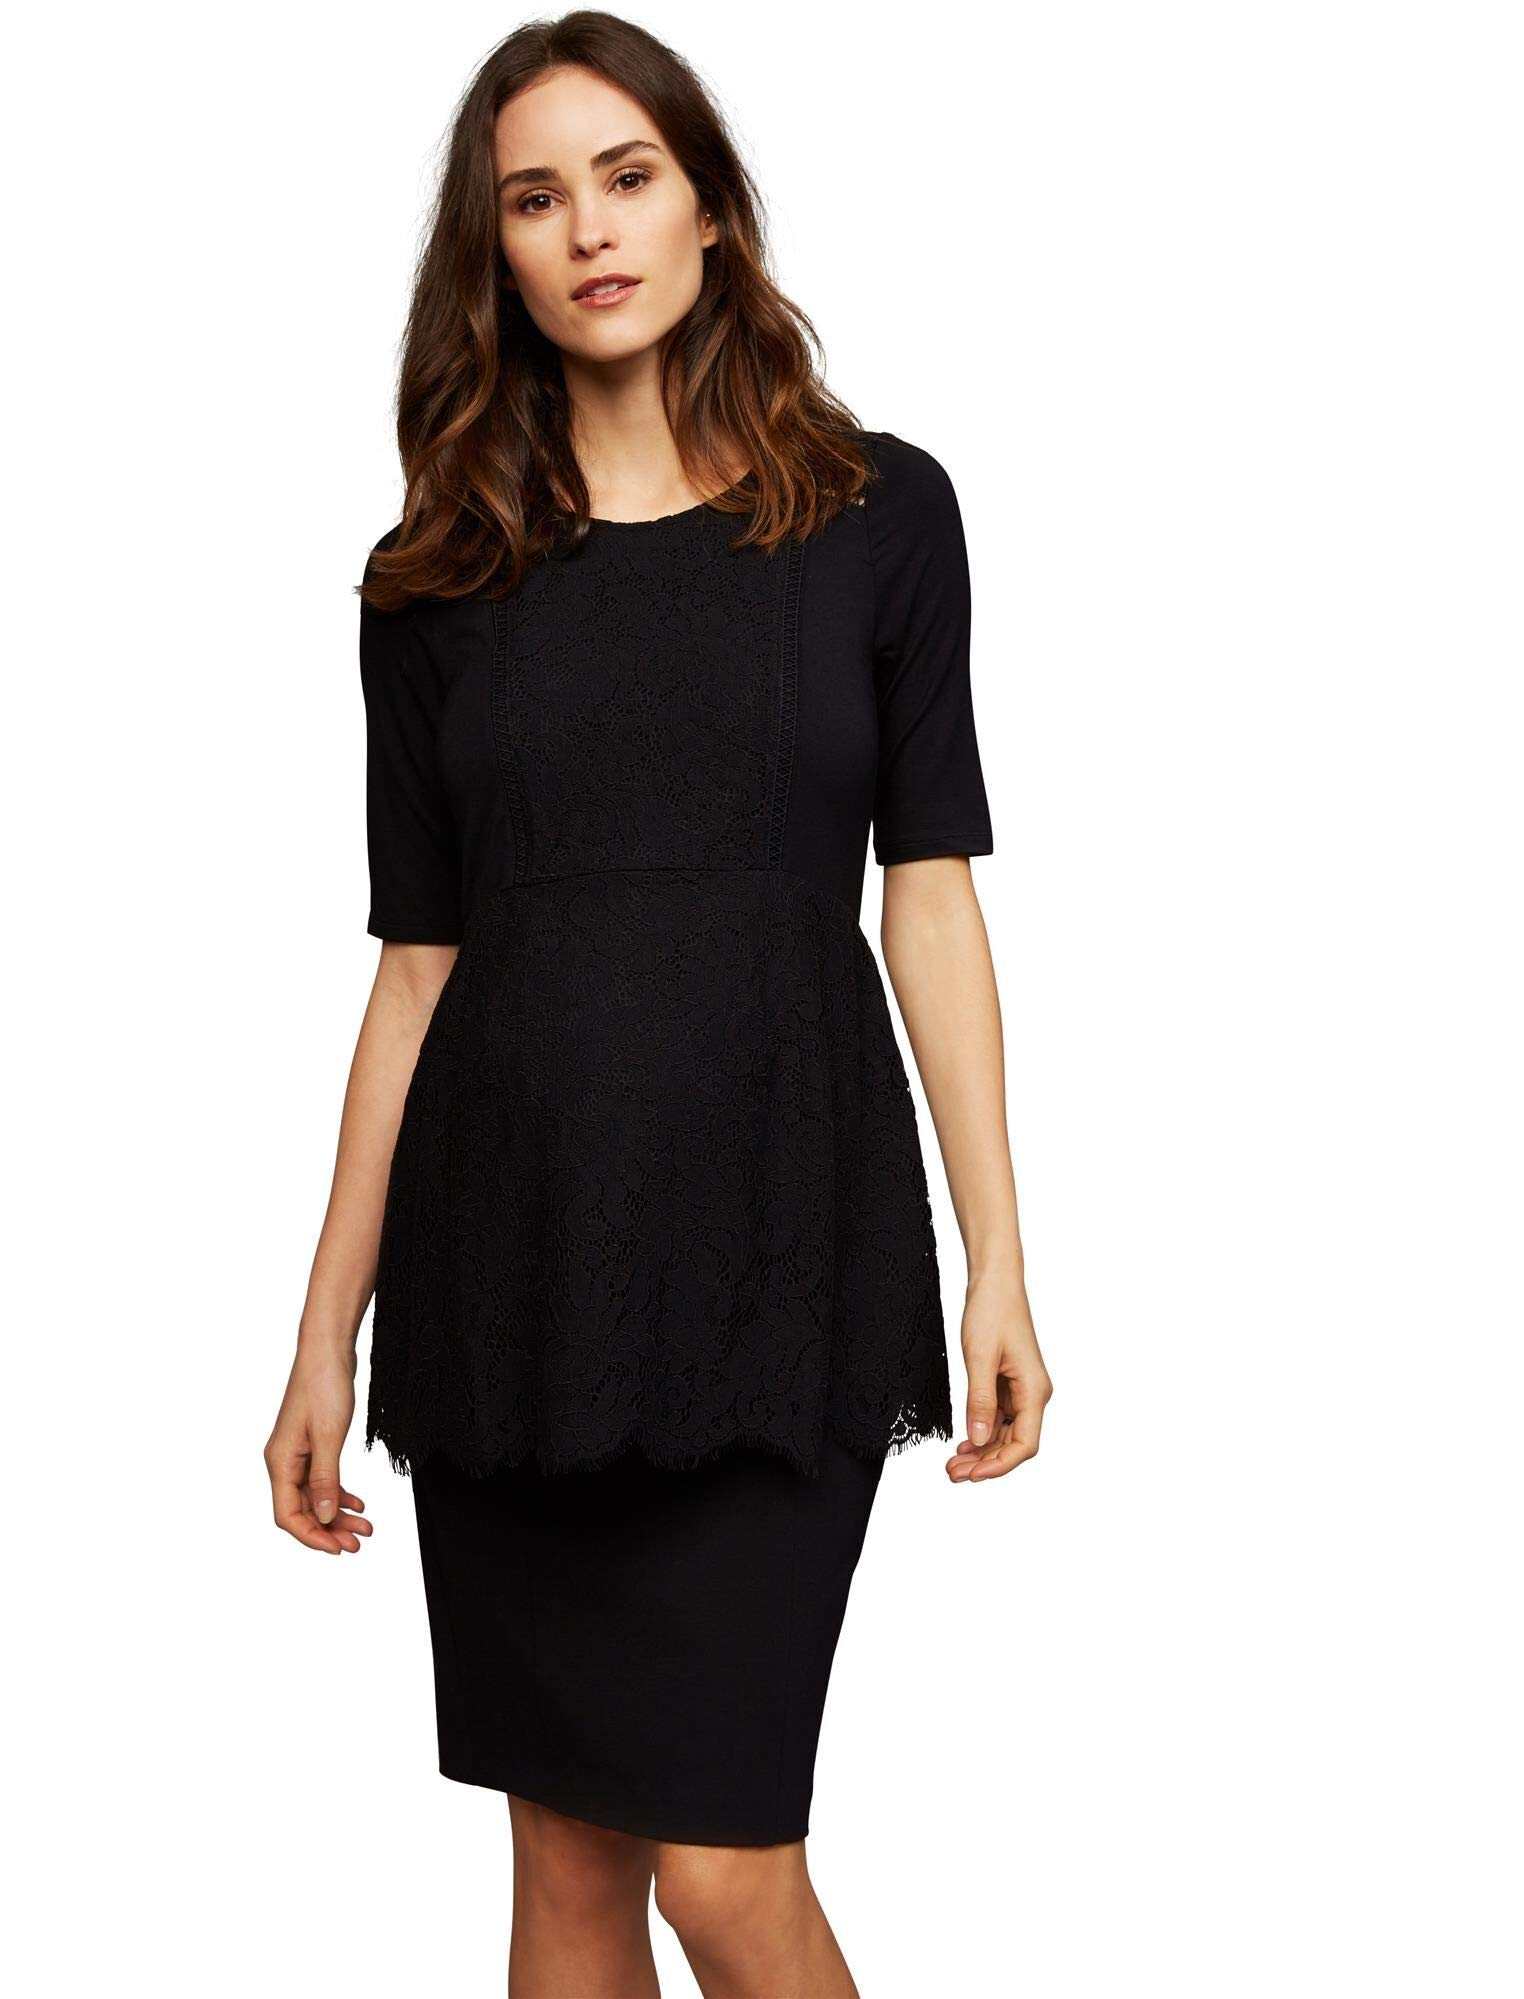 A Pea in the Pod Secret Fit Belly Pencil Fit Maternity Skirt Core Black by A Pea in the Pod